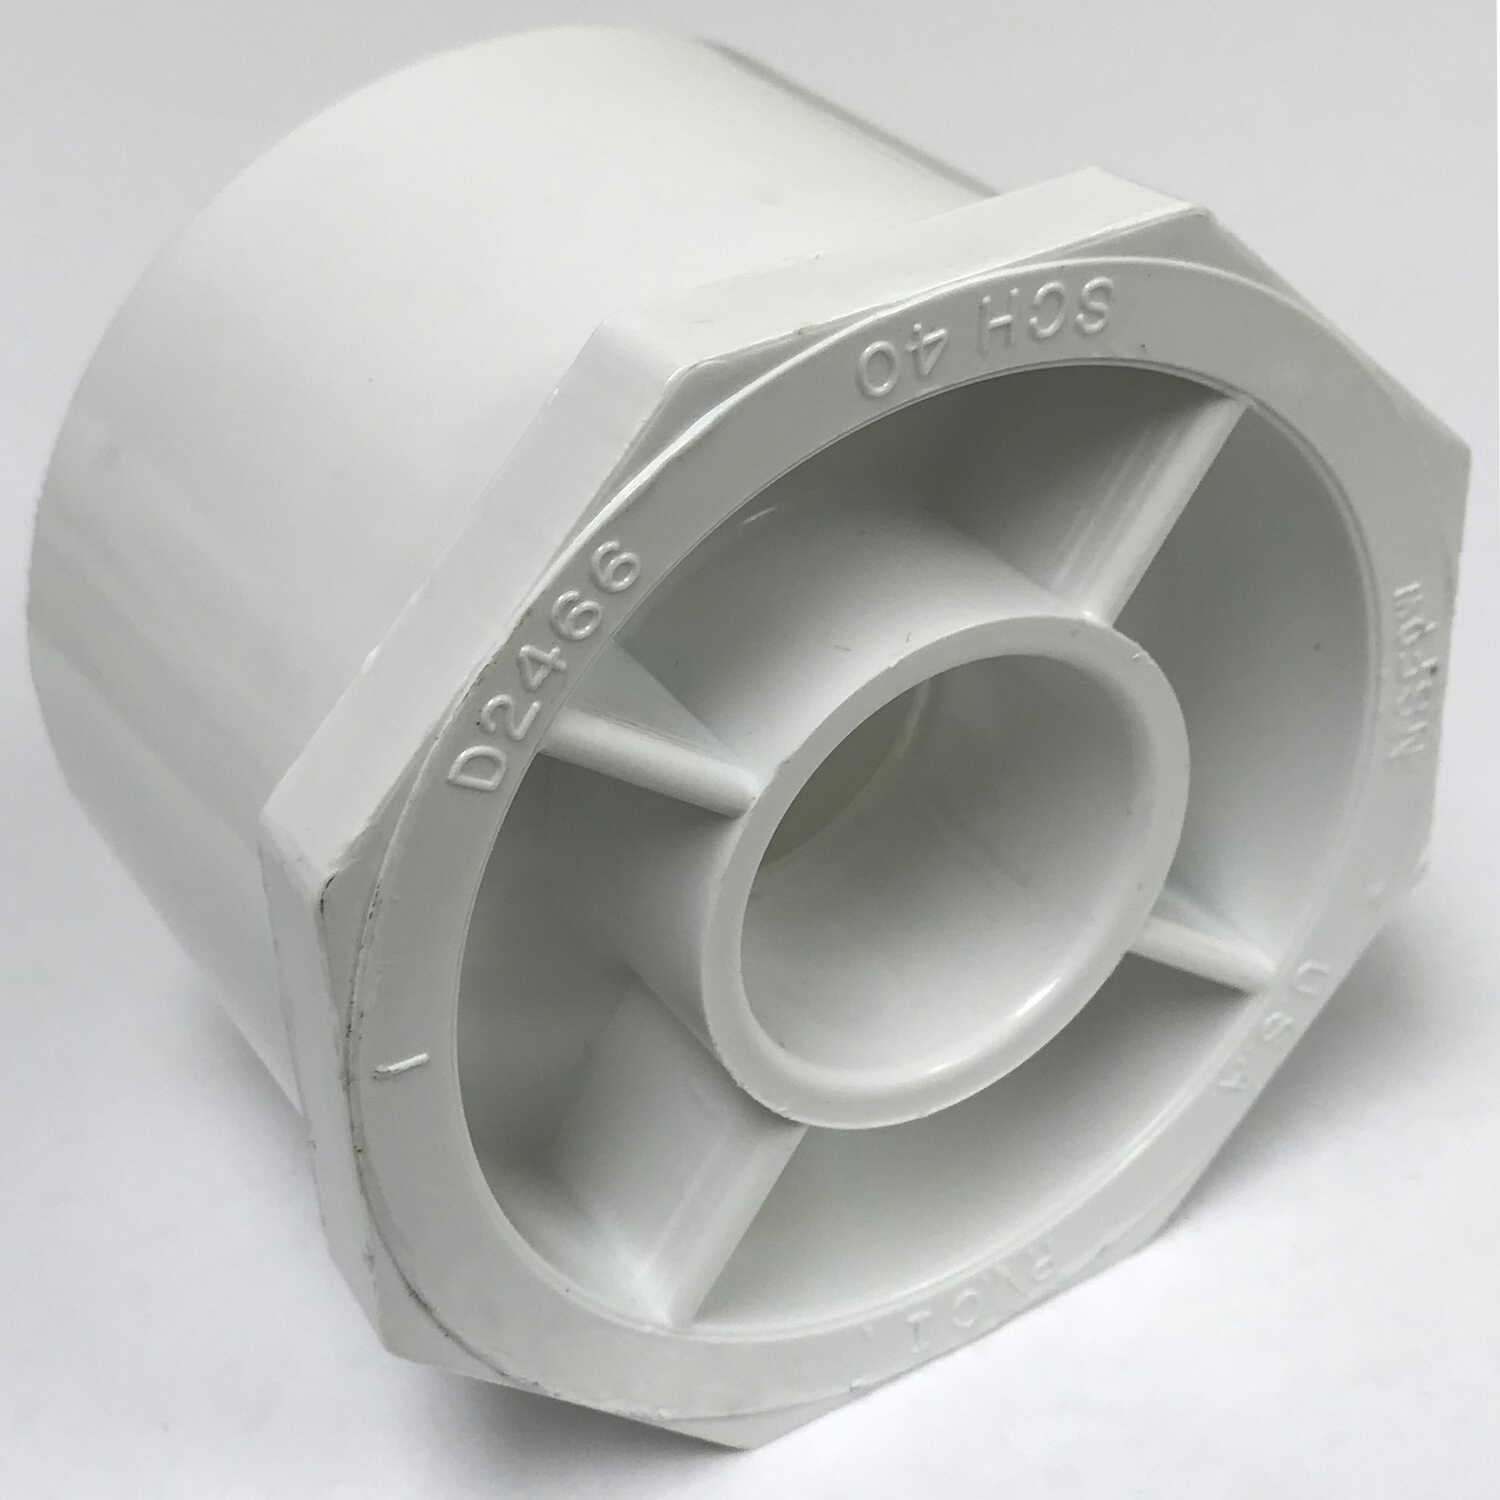 Charlotte Pipe  Schedule 40  3 in. Slip   x 1 in. Dia. Slip  PVC  Reducing Bushing